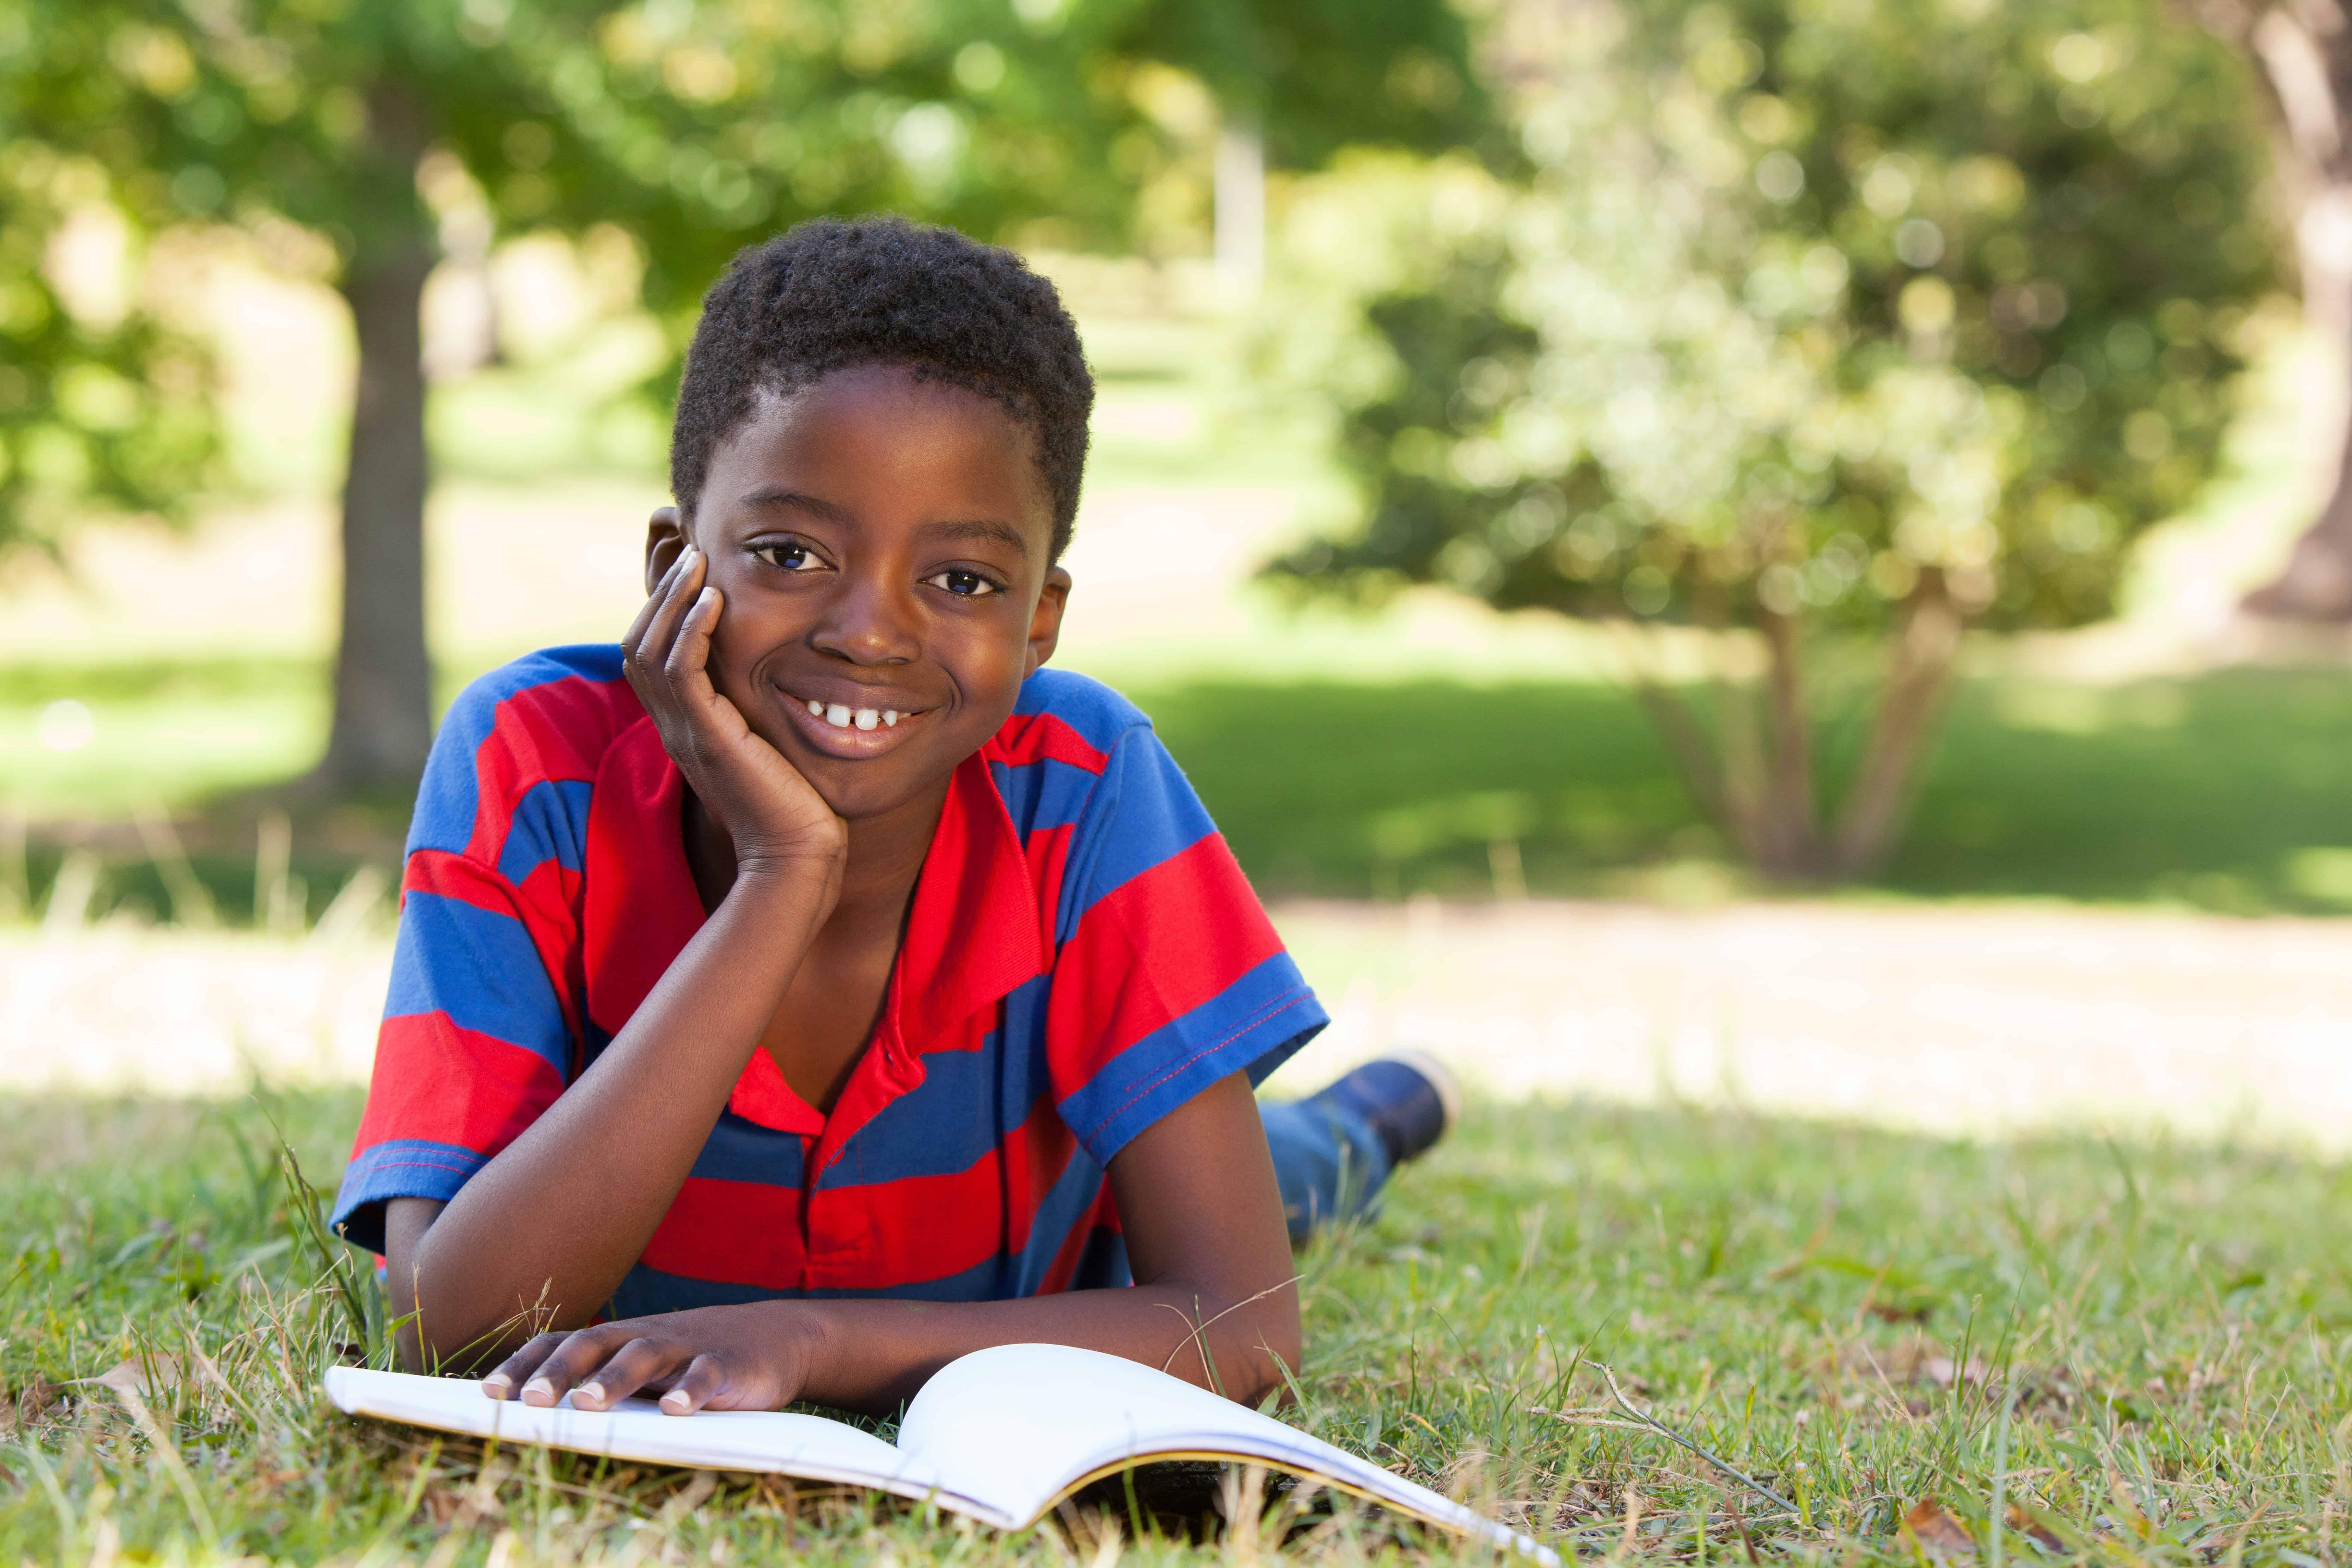 Little boy reading in the park; how to get more books to build bigger libraries